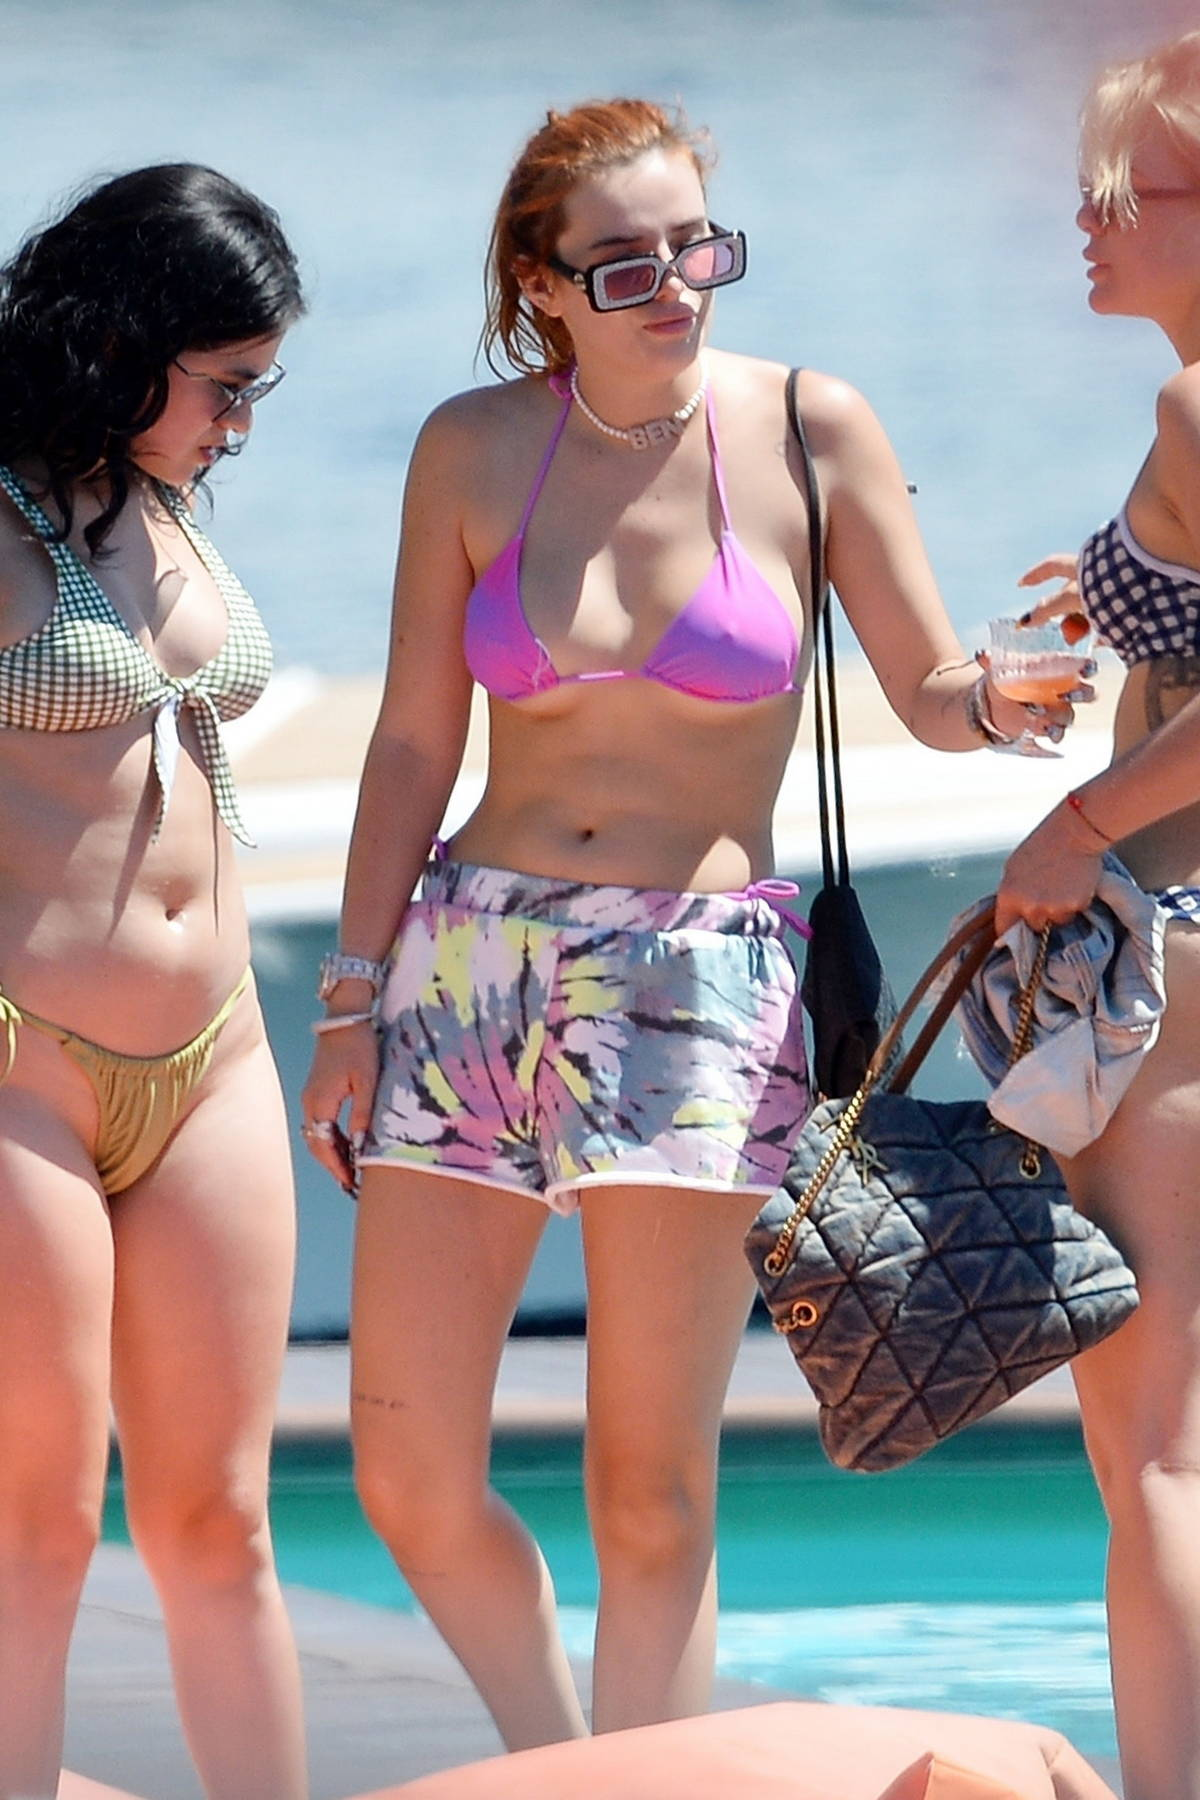 Bella Thorne wears a bikini top and shorts while relaxing by the pool with friends in Como, Italy